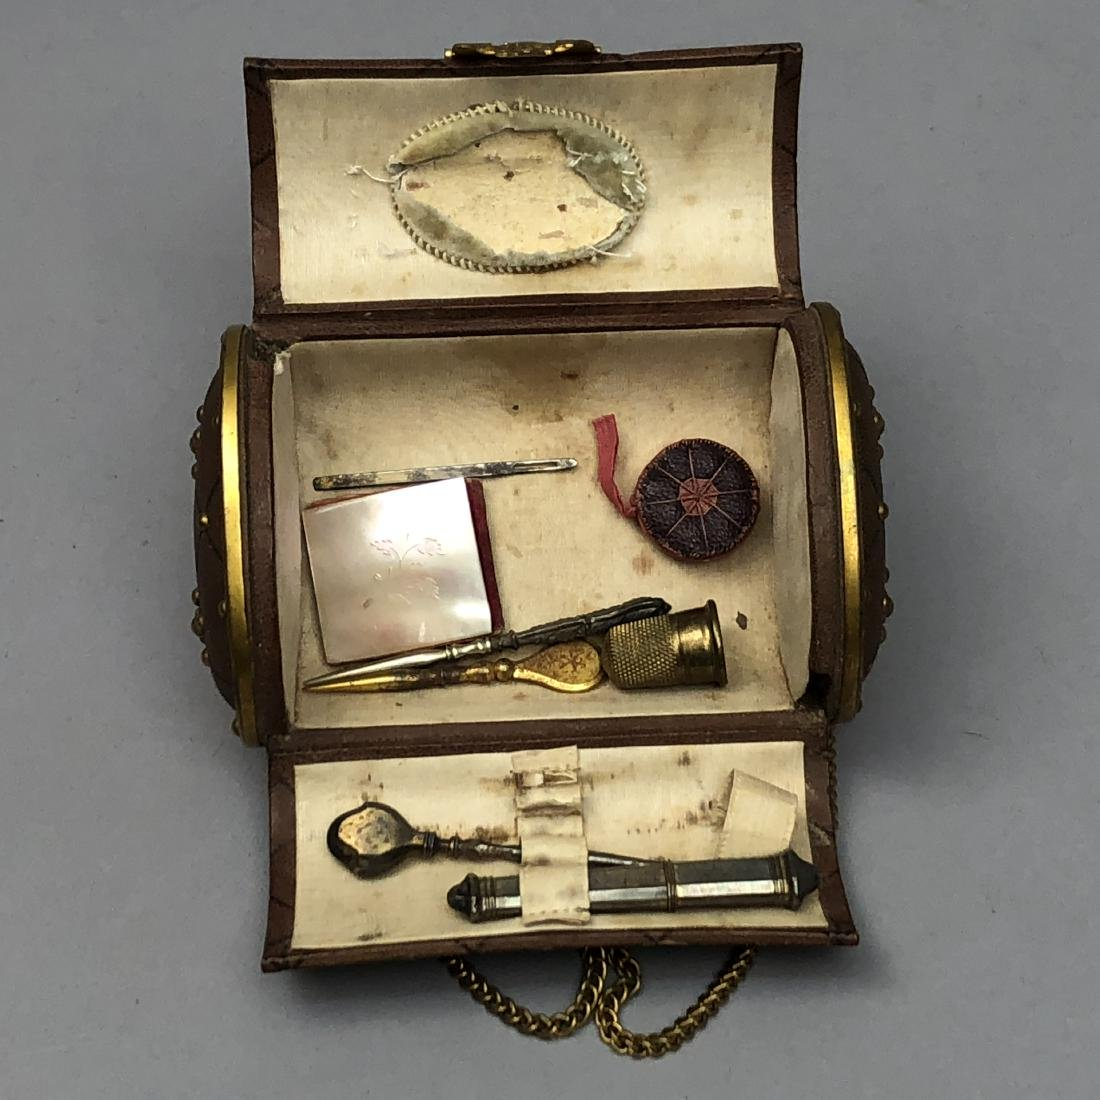 HINGED-LID LEATHER SEWING CASE, 1850 - 1870 - 2